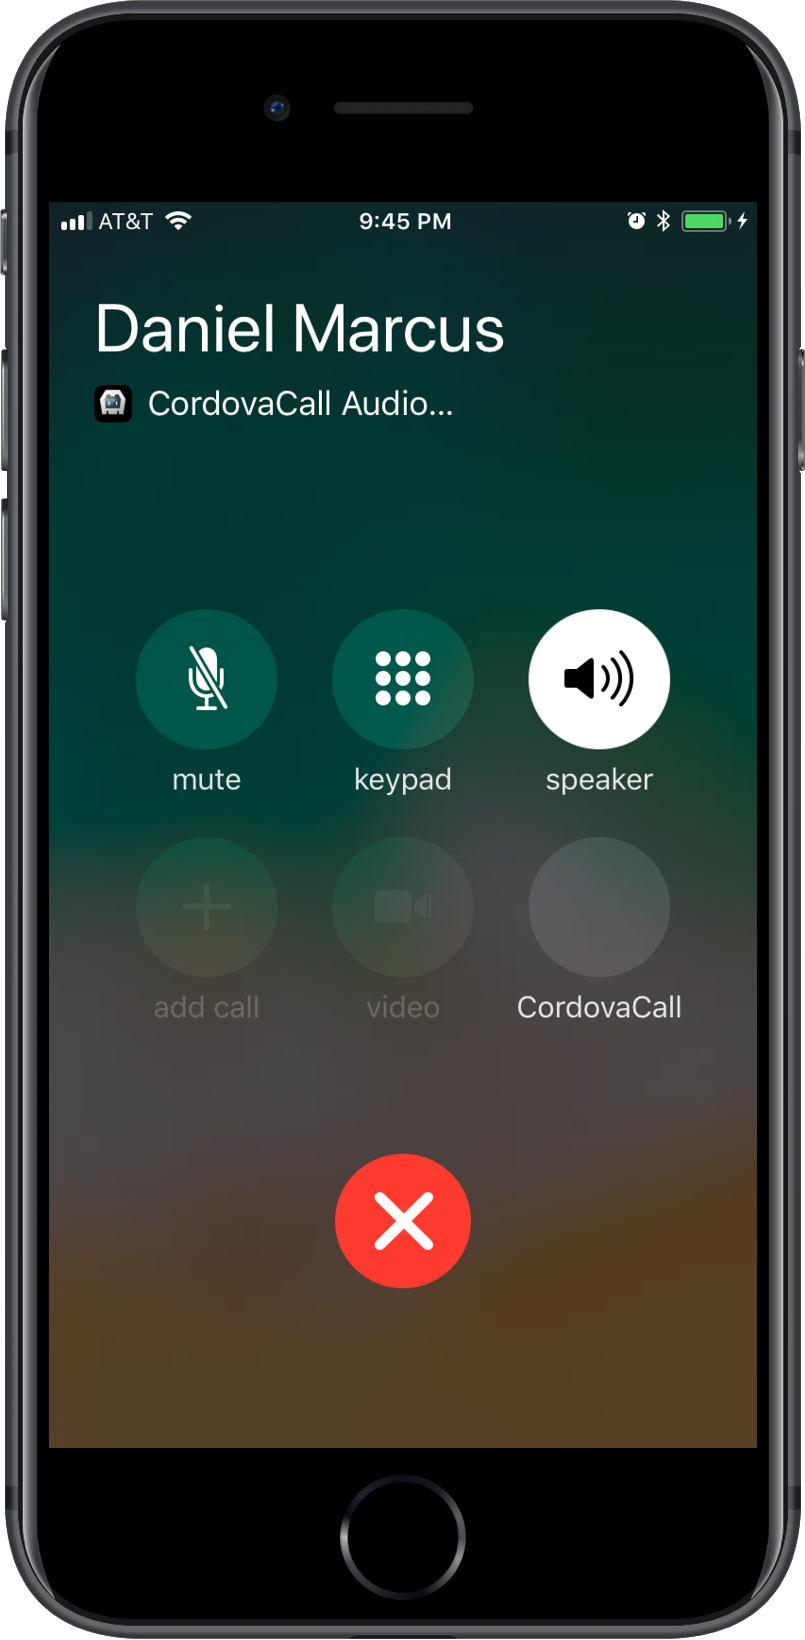 CordovaCall Send Call iOS CallKit